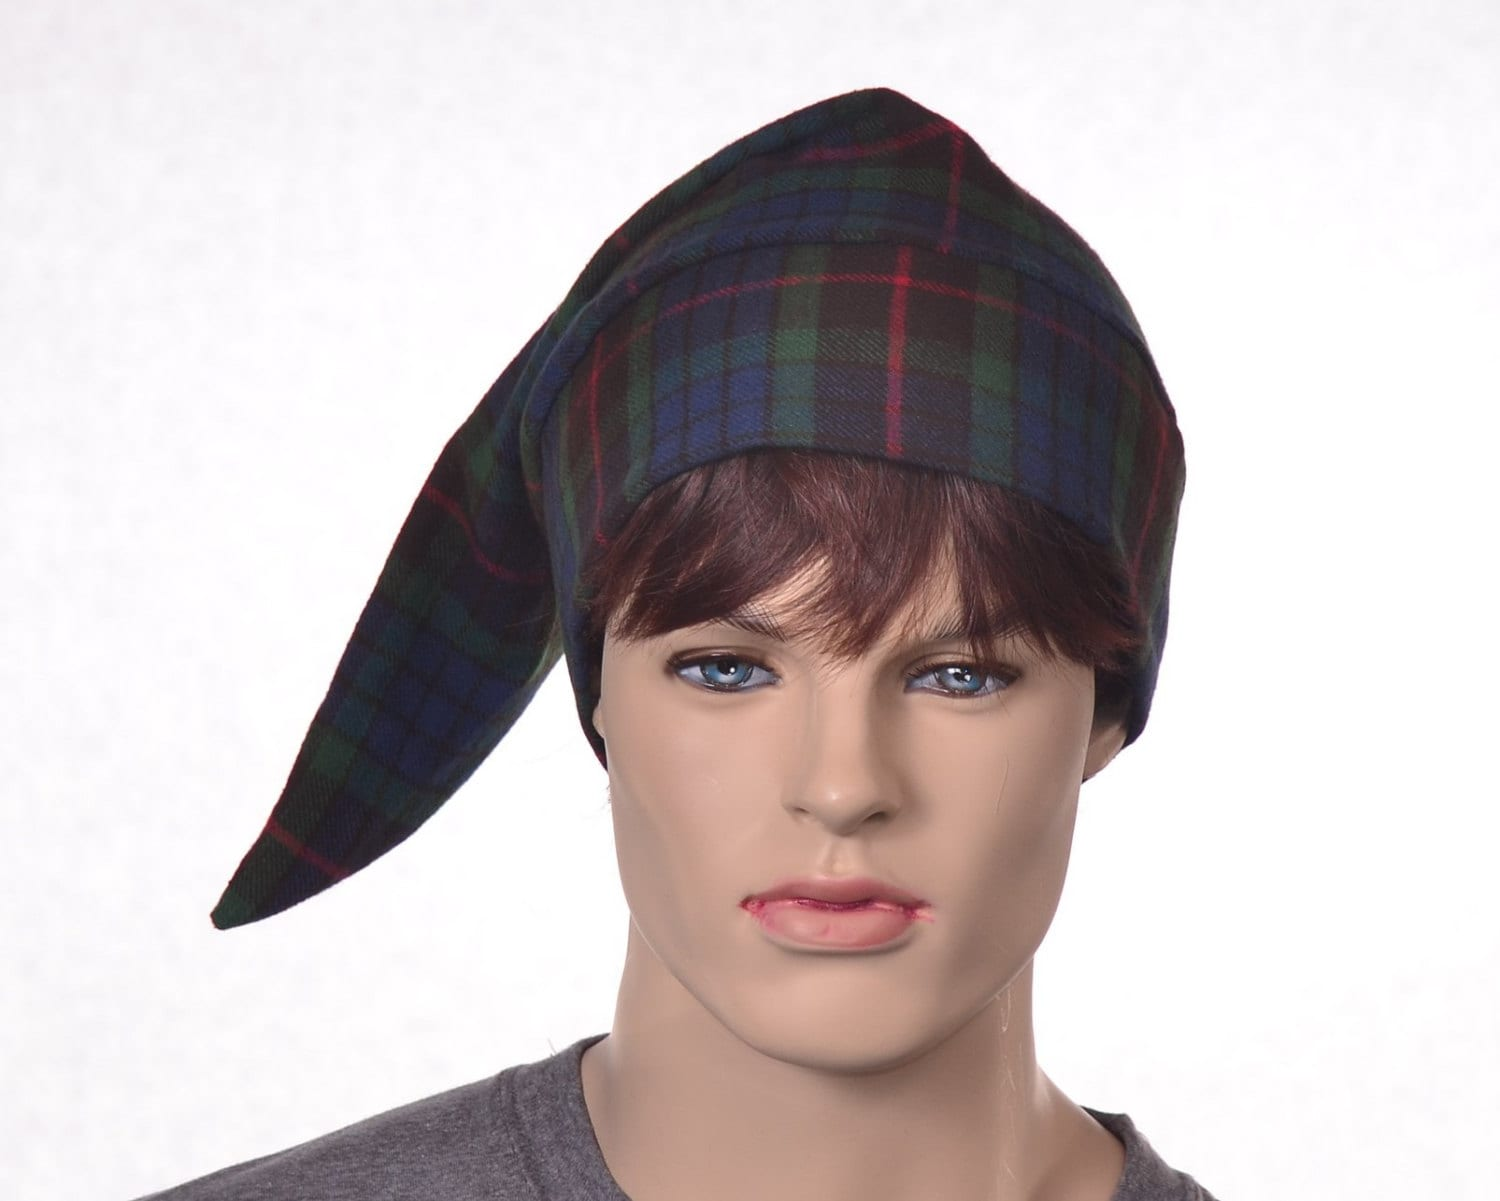 f0b64280d1 Cotton Flannel Night Cap in Green Tartan Plaid Heavyweight Nightcap Adult  Mens Women s Sleep Hat Traditional Pointed Nightcap Sleeping Cap